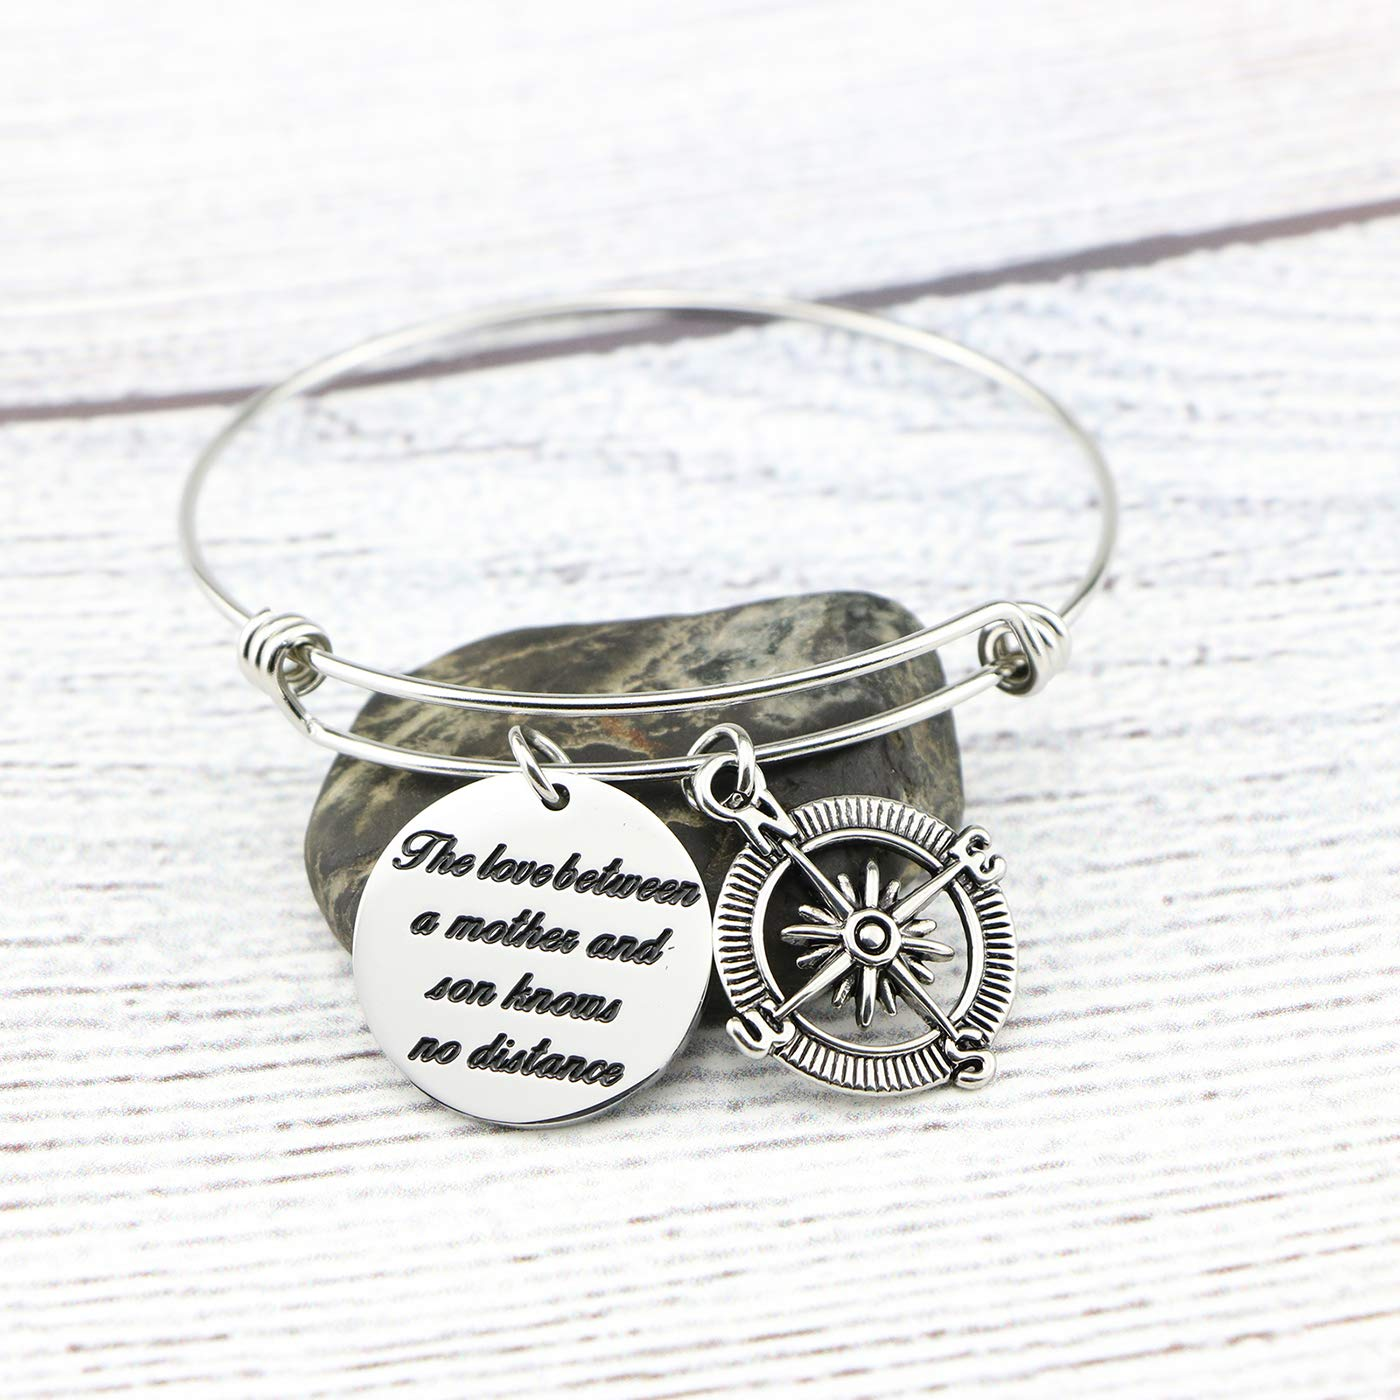 Memgift Gift for Mother Stainless Steel Bracelet The Love Between a Mother and Son Knows No Distance by Memgift (Image #2)